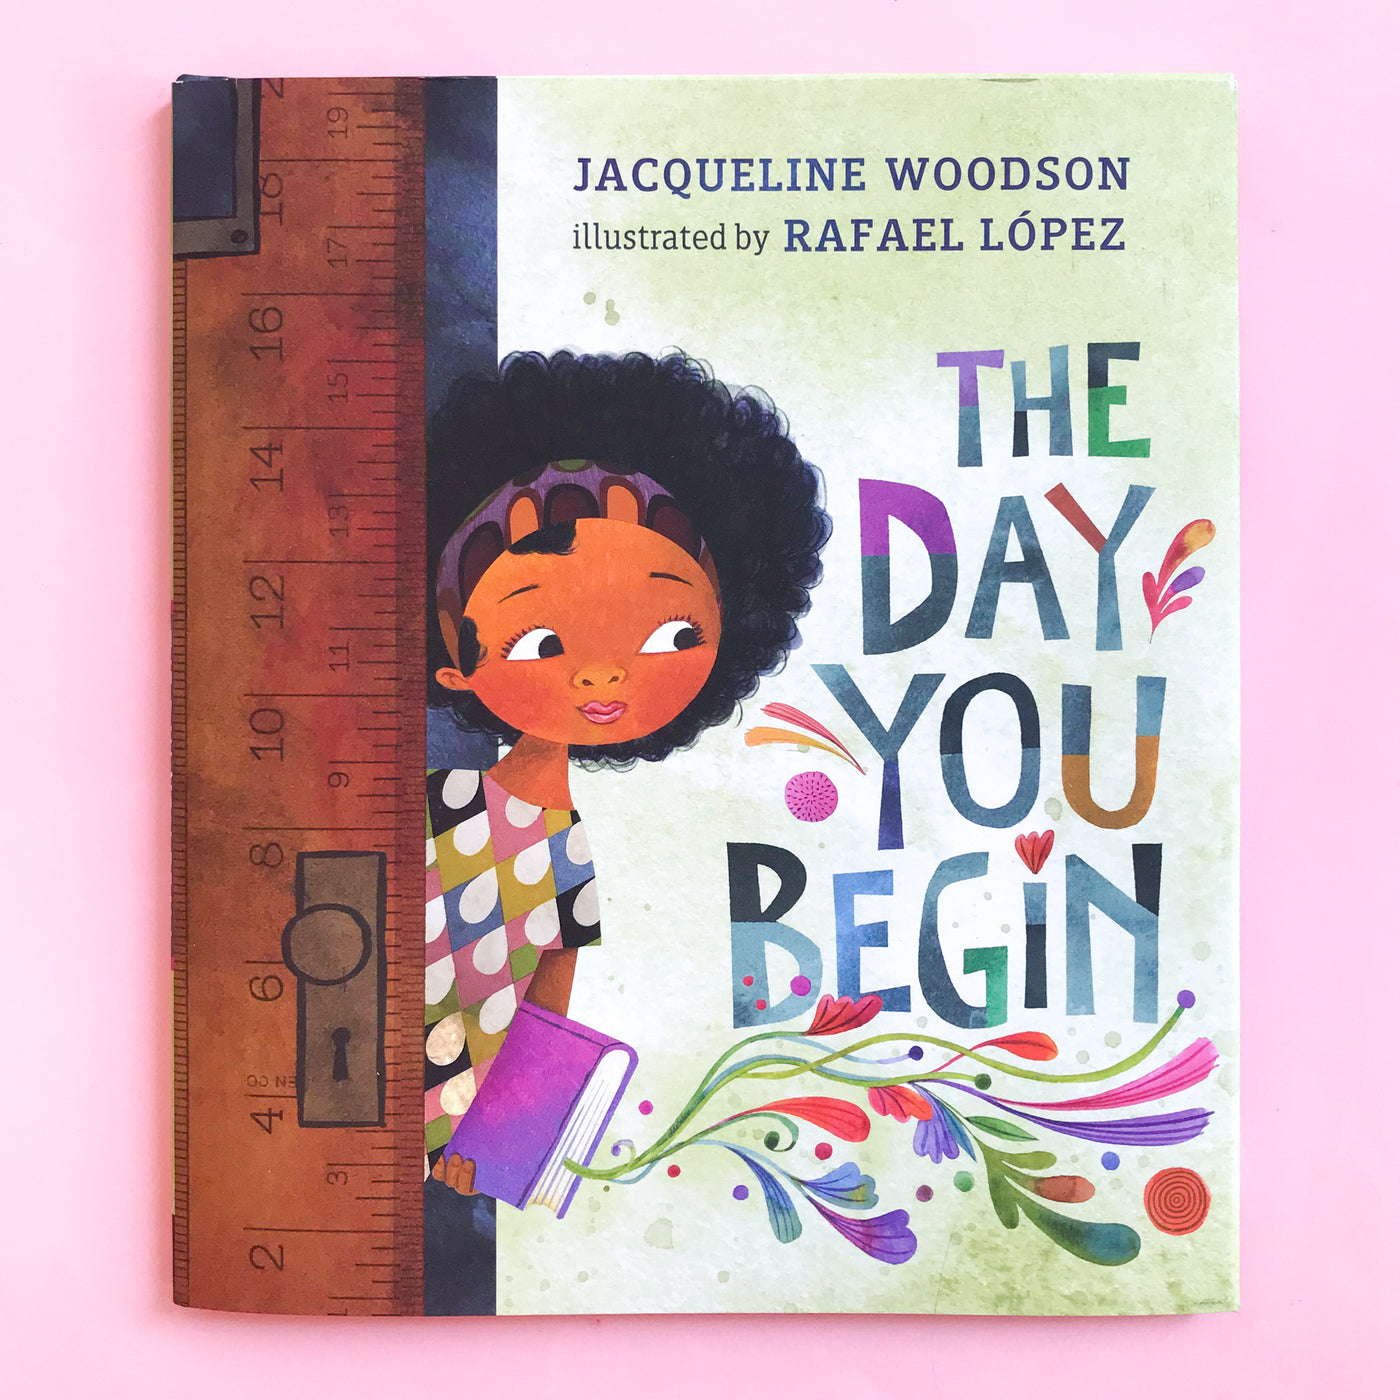 The Day You Begin by Jacqueline Woodson and Rafael Lopez